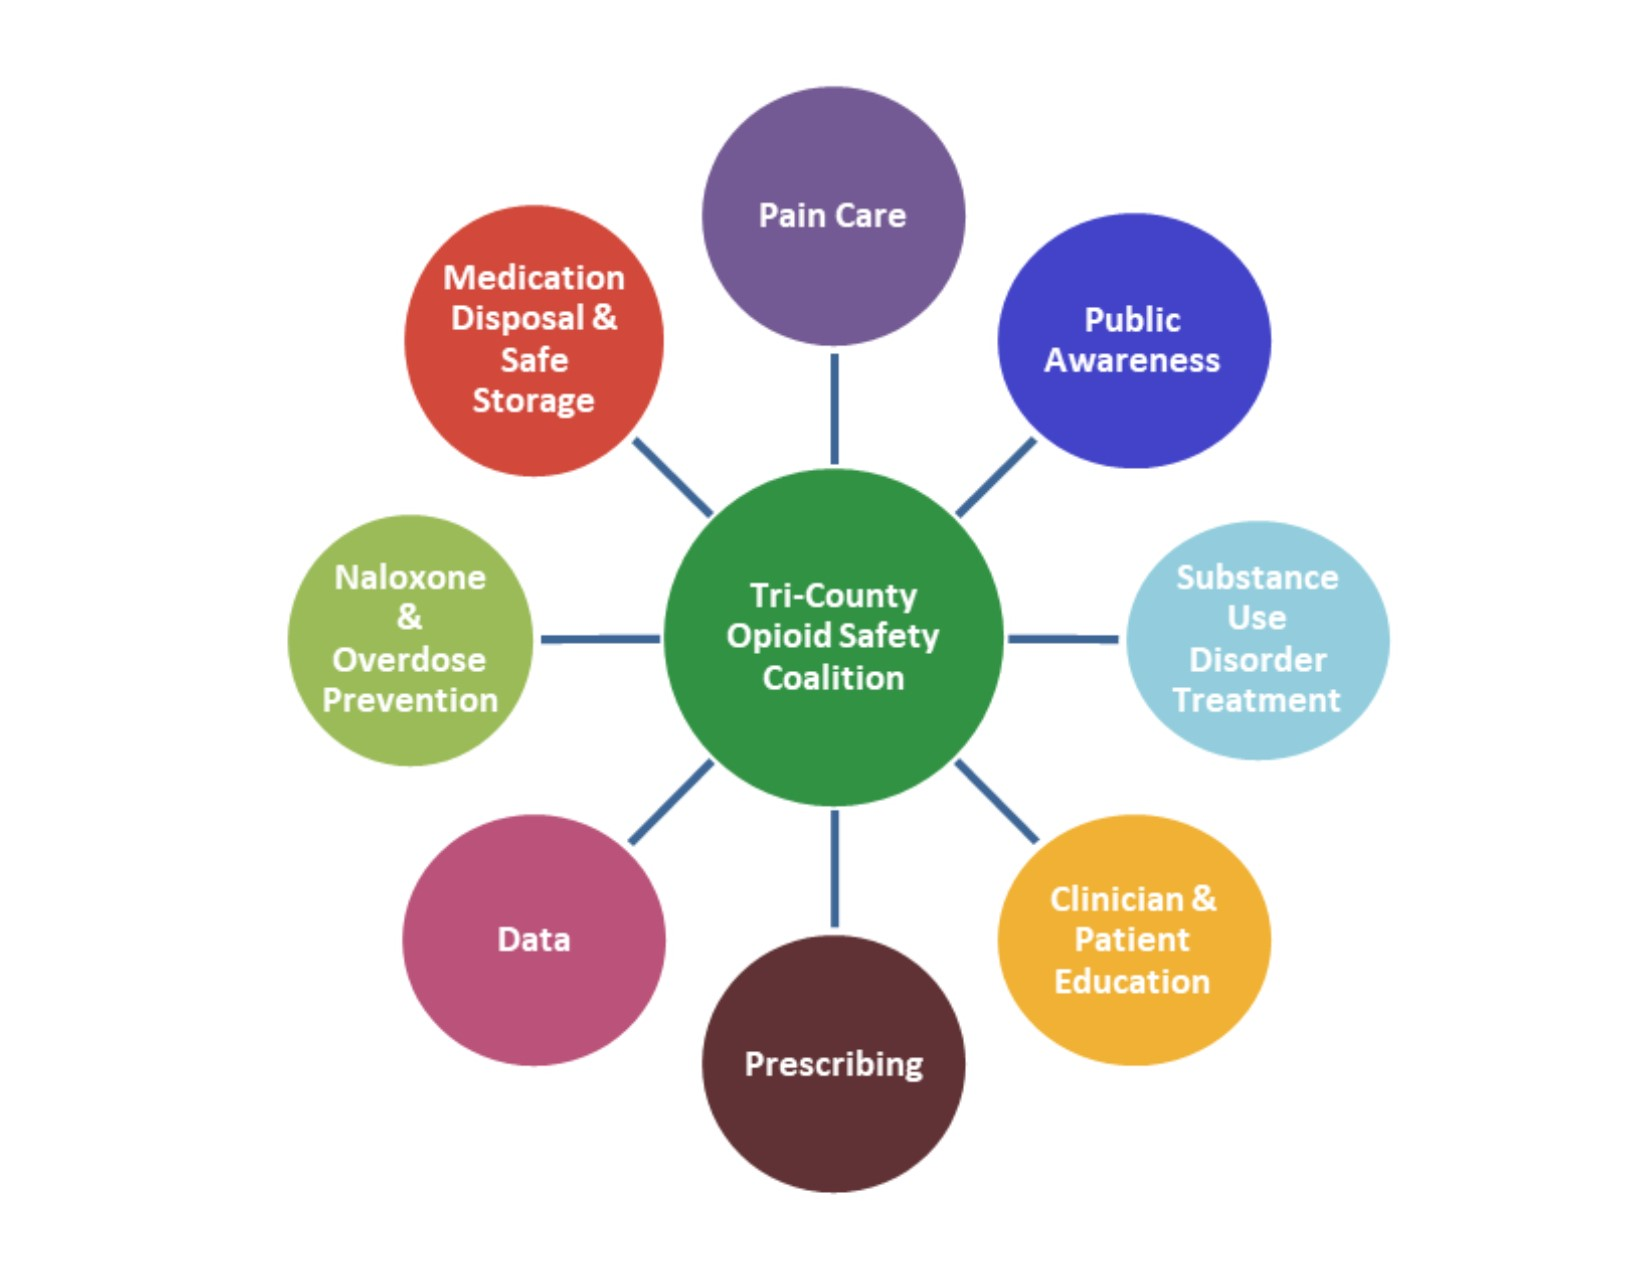 Diagram of the Tri-County Opioid Safety Coalition's Domains: Pain Care, Public Awareness, Substance Use Disorder Treatment, Clinician and Patient Education, Prescribing, Data, Naloxone and Overdose Prevention, and Medication Disposal and Safe Storage